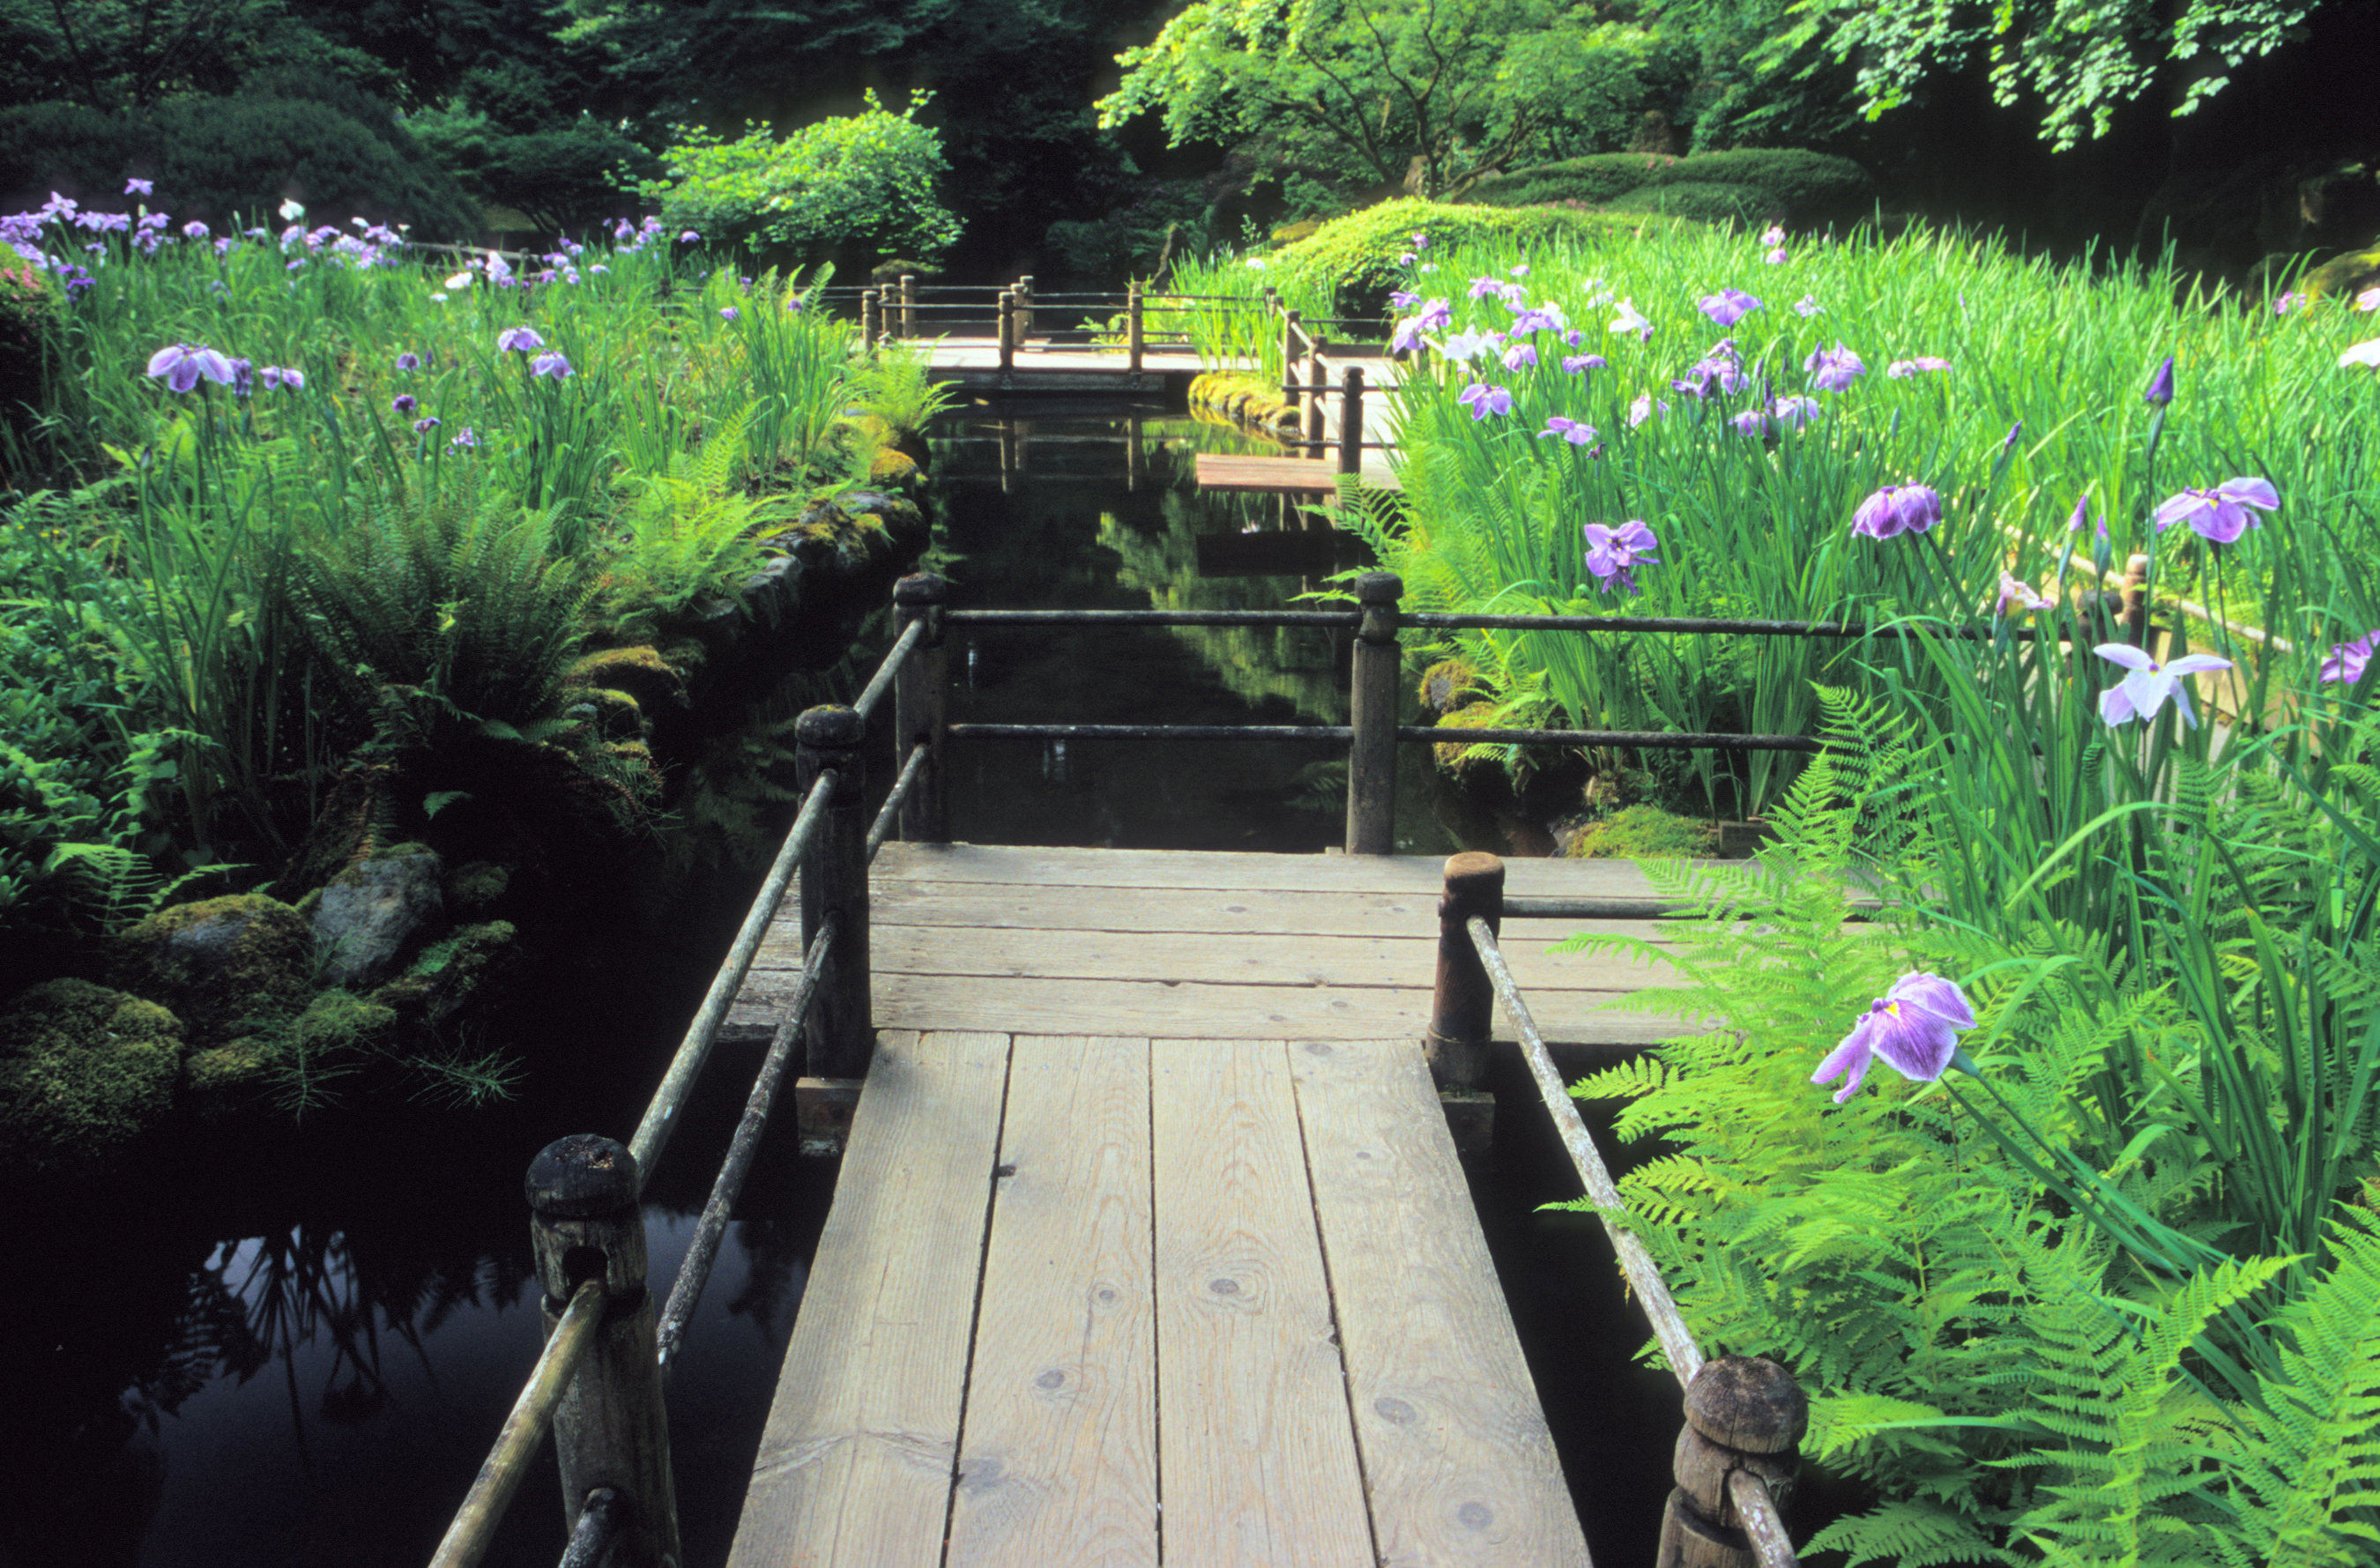 Japanese Gardens bridge II